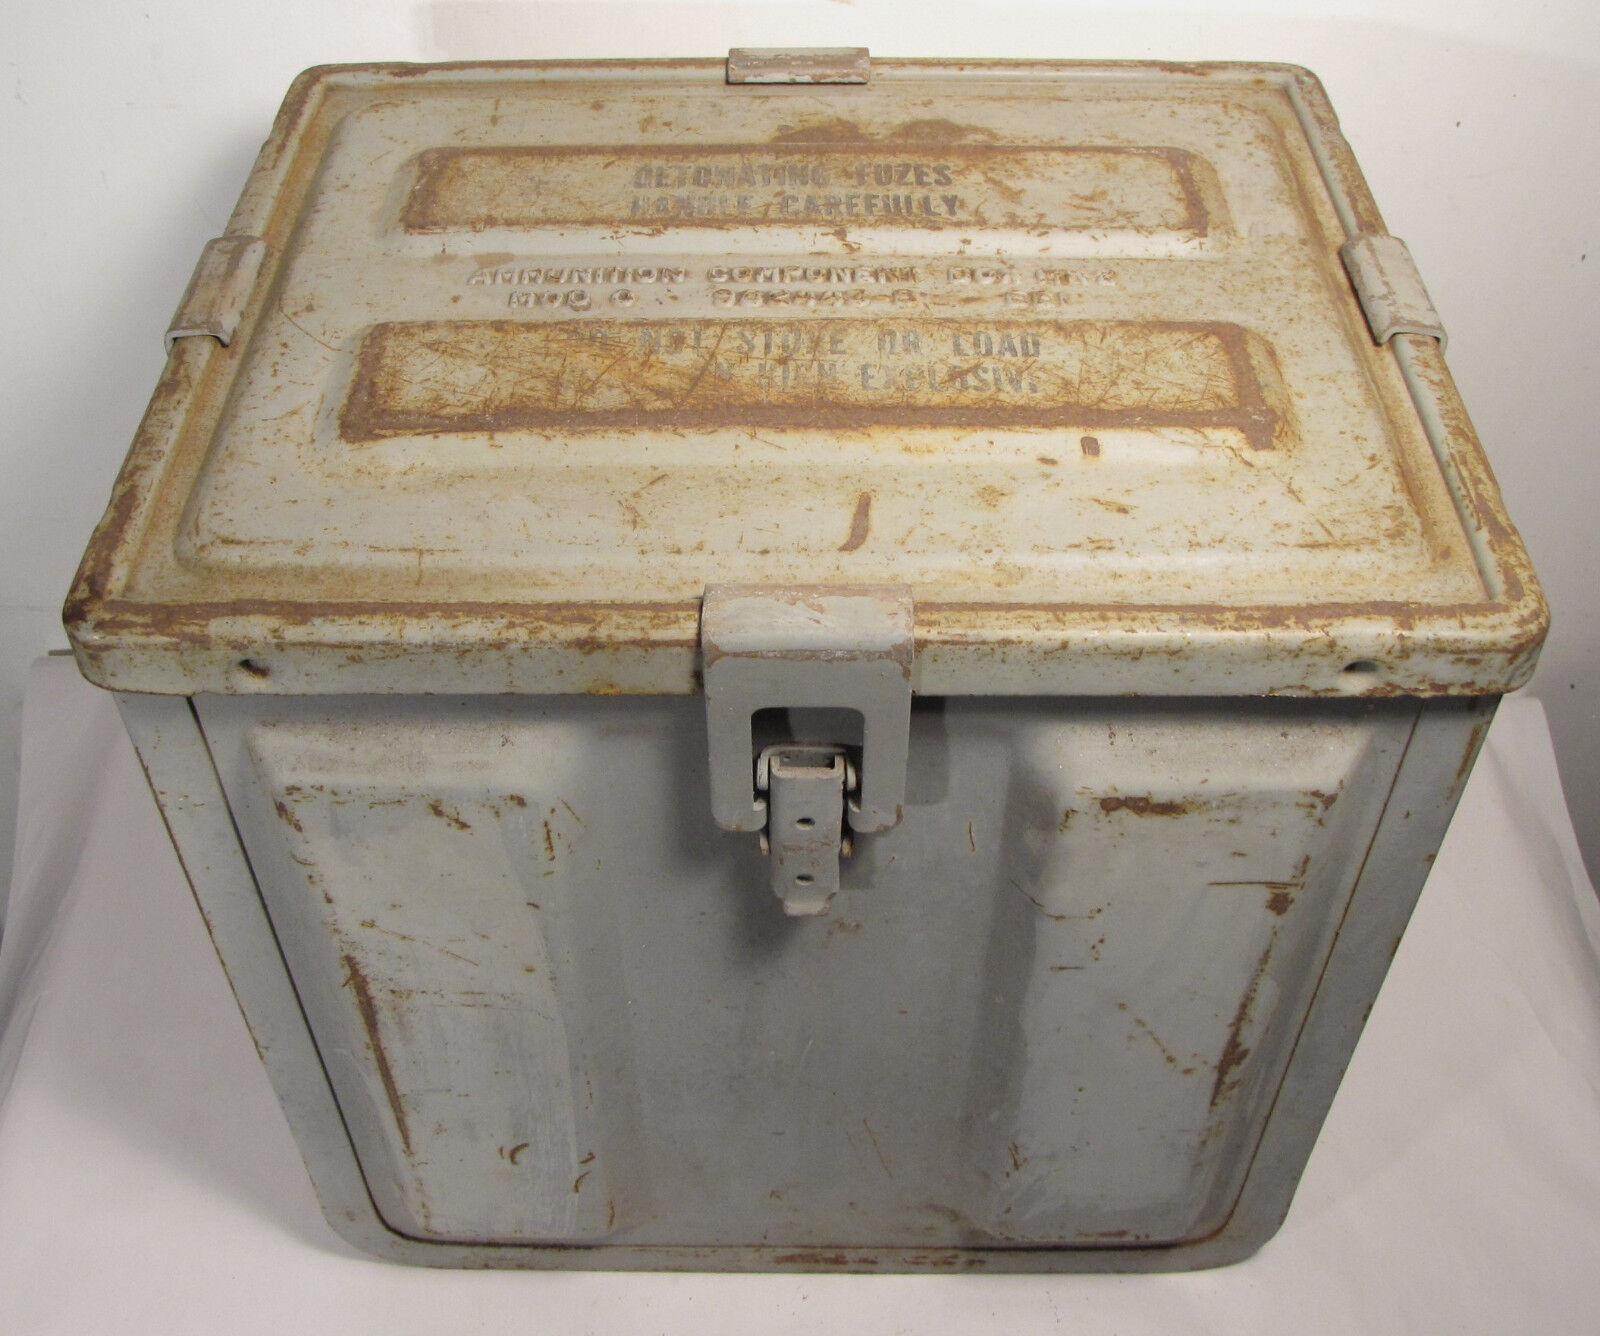 vintage us navy mk2 fuse ammo box wwii korean war era